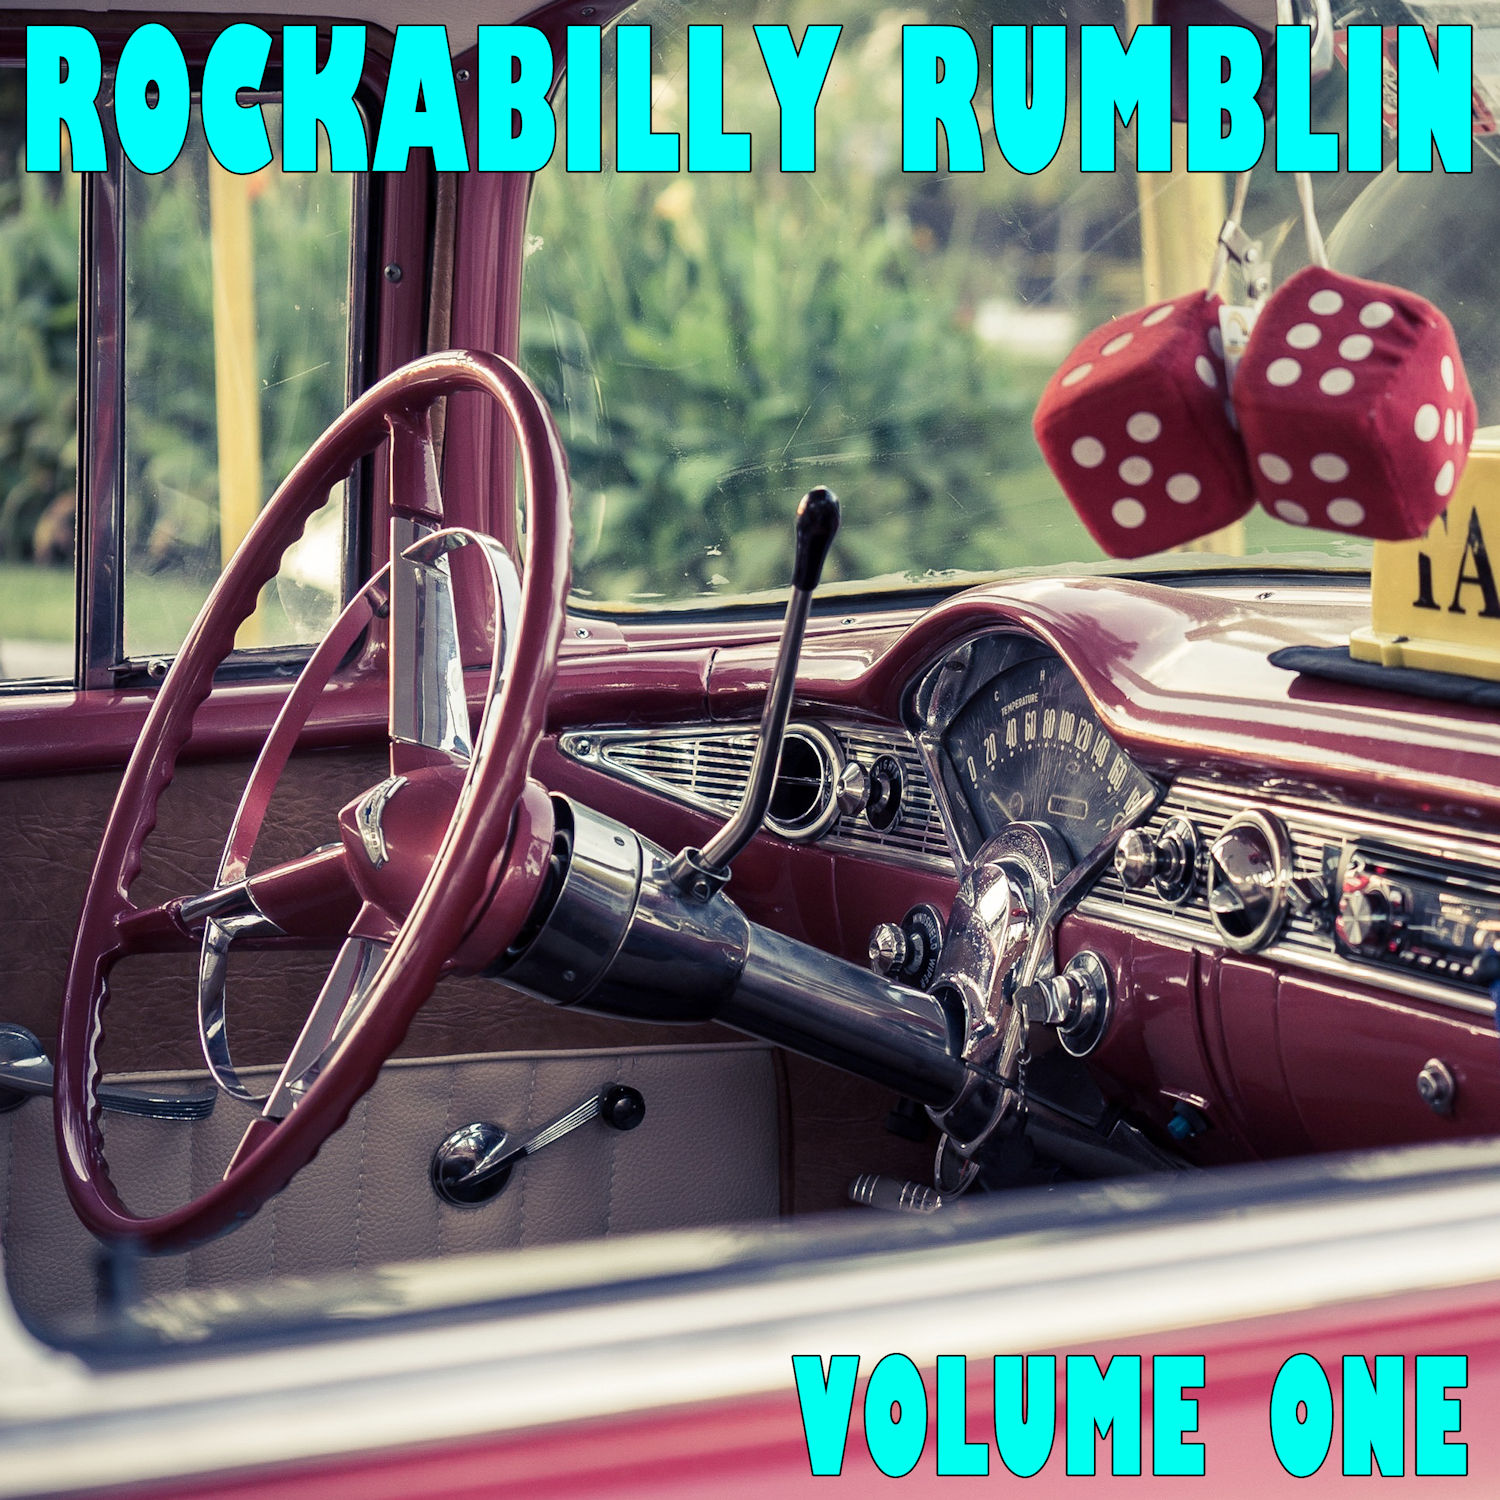 Rockabilly Rumblin Volume One